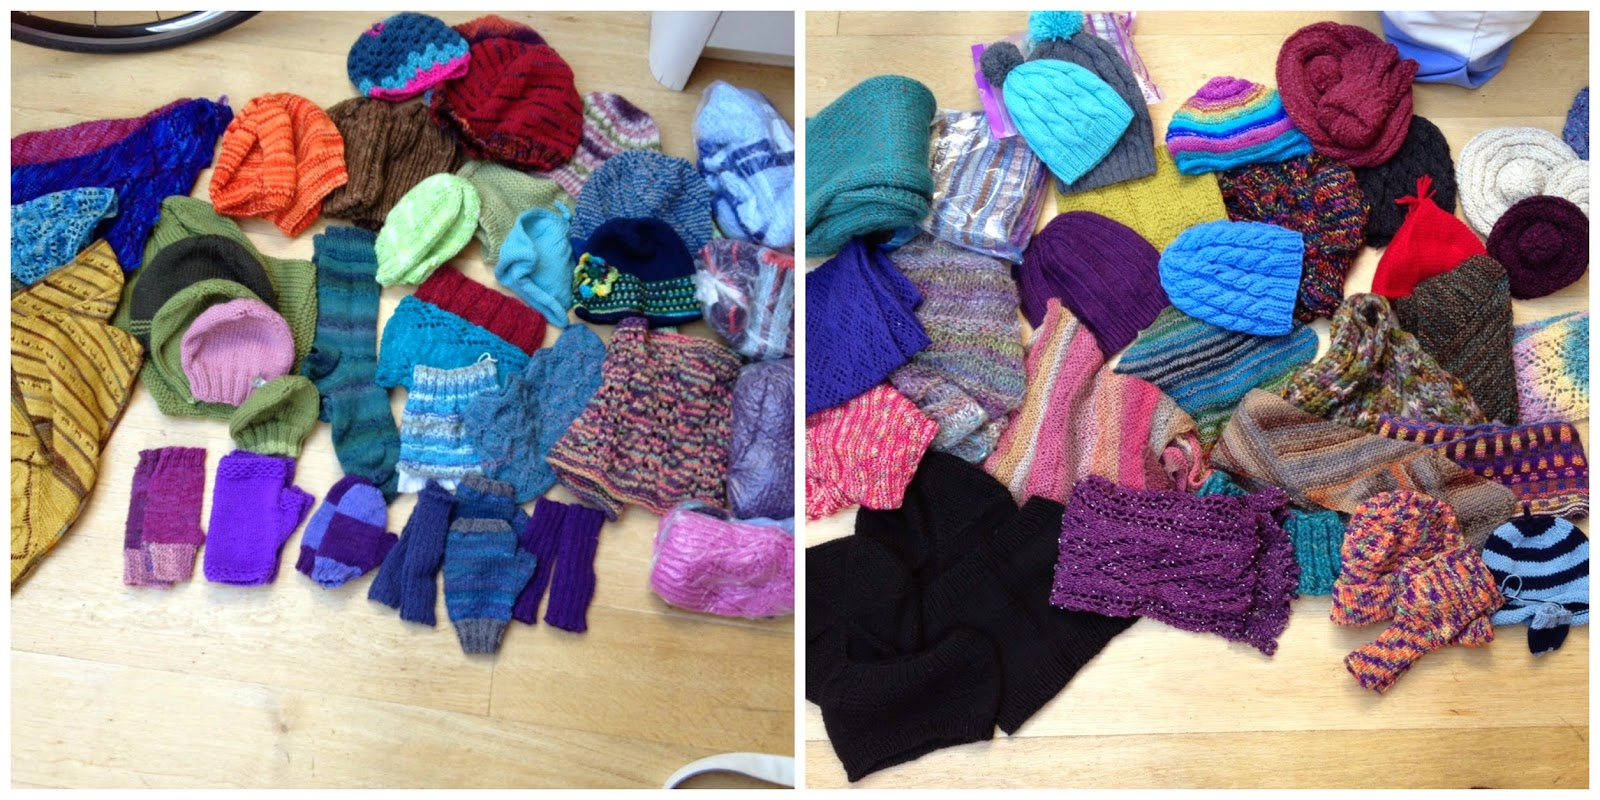 The incredible number of hand knits you helped us collect for Refuge - and this isn't even all of them!